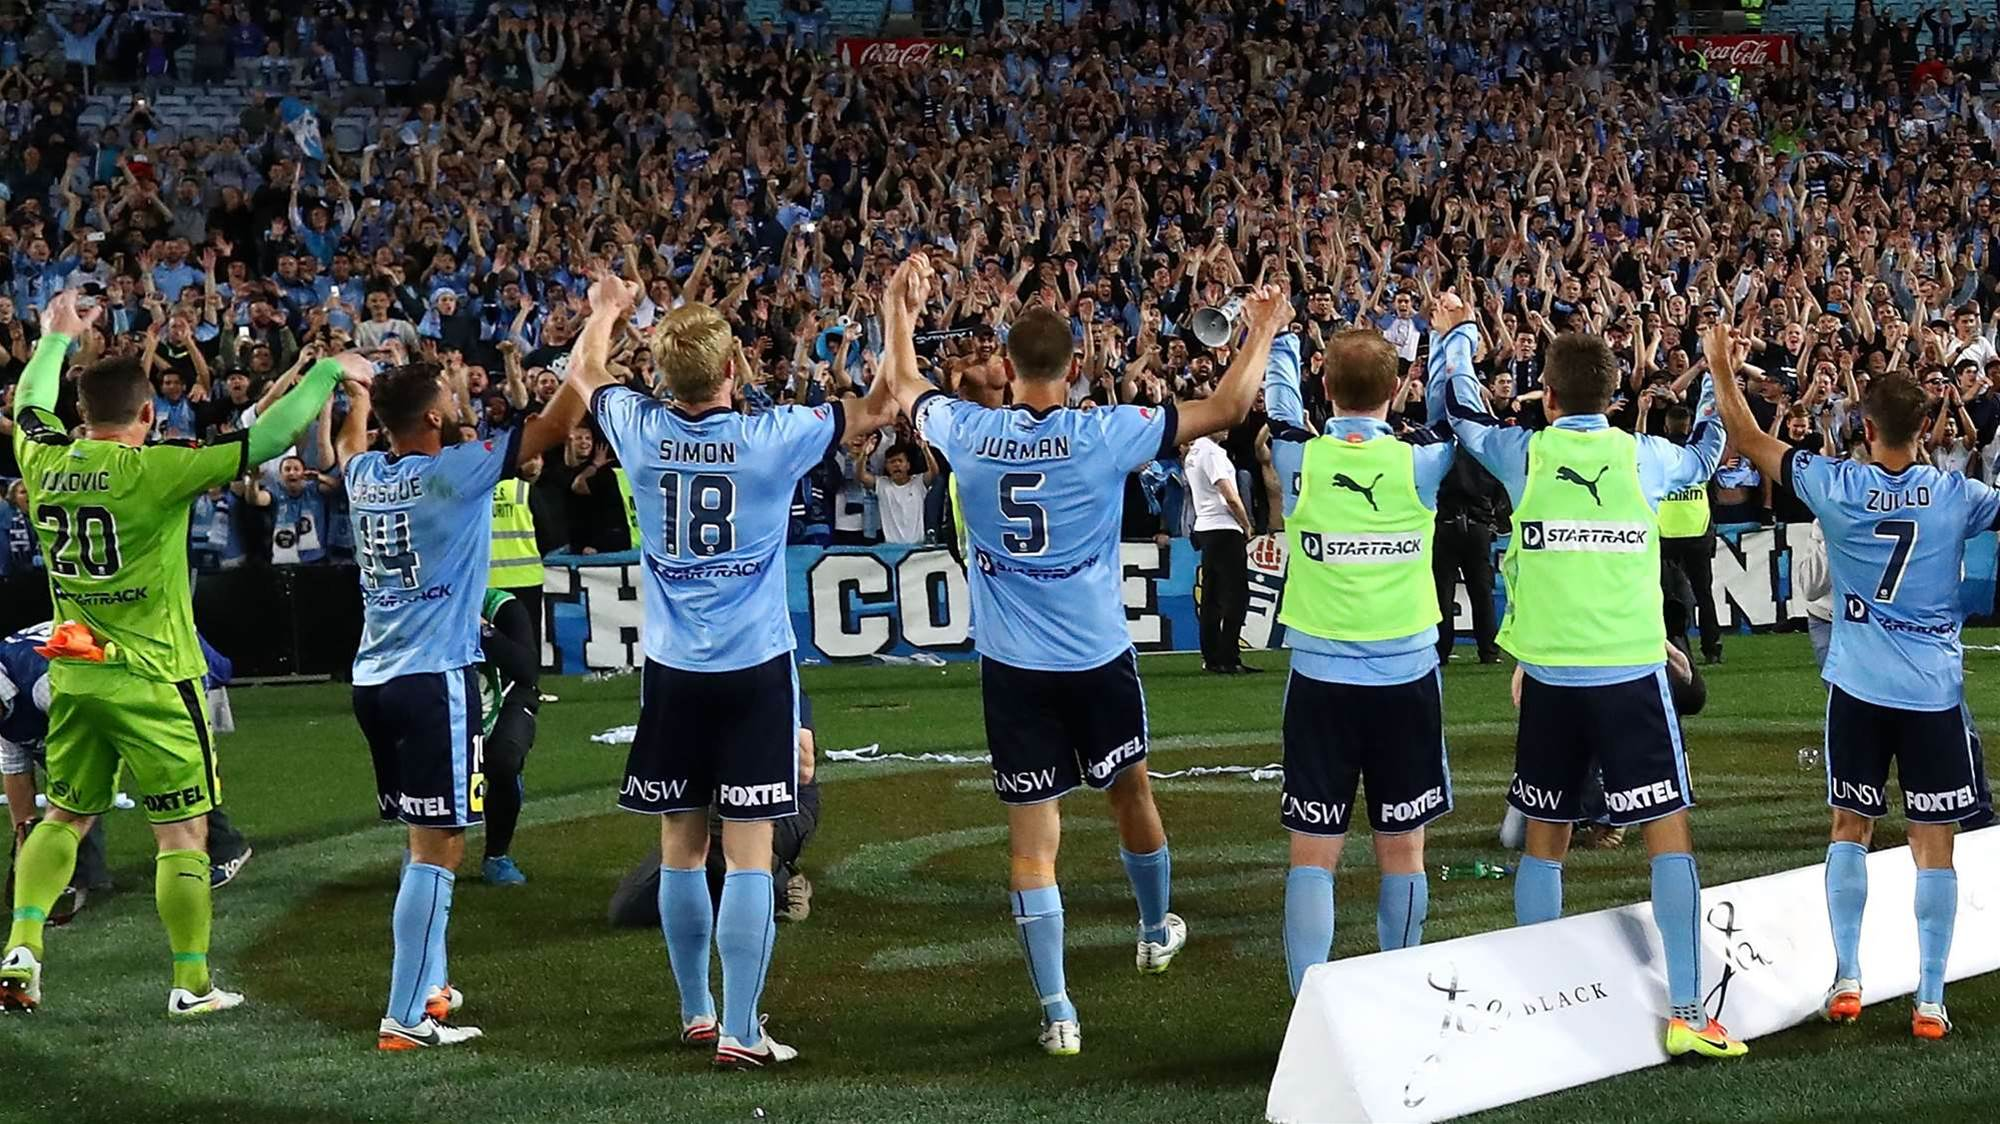 Huge crowds support A-League expansion